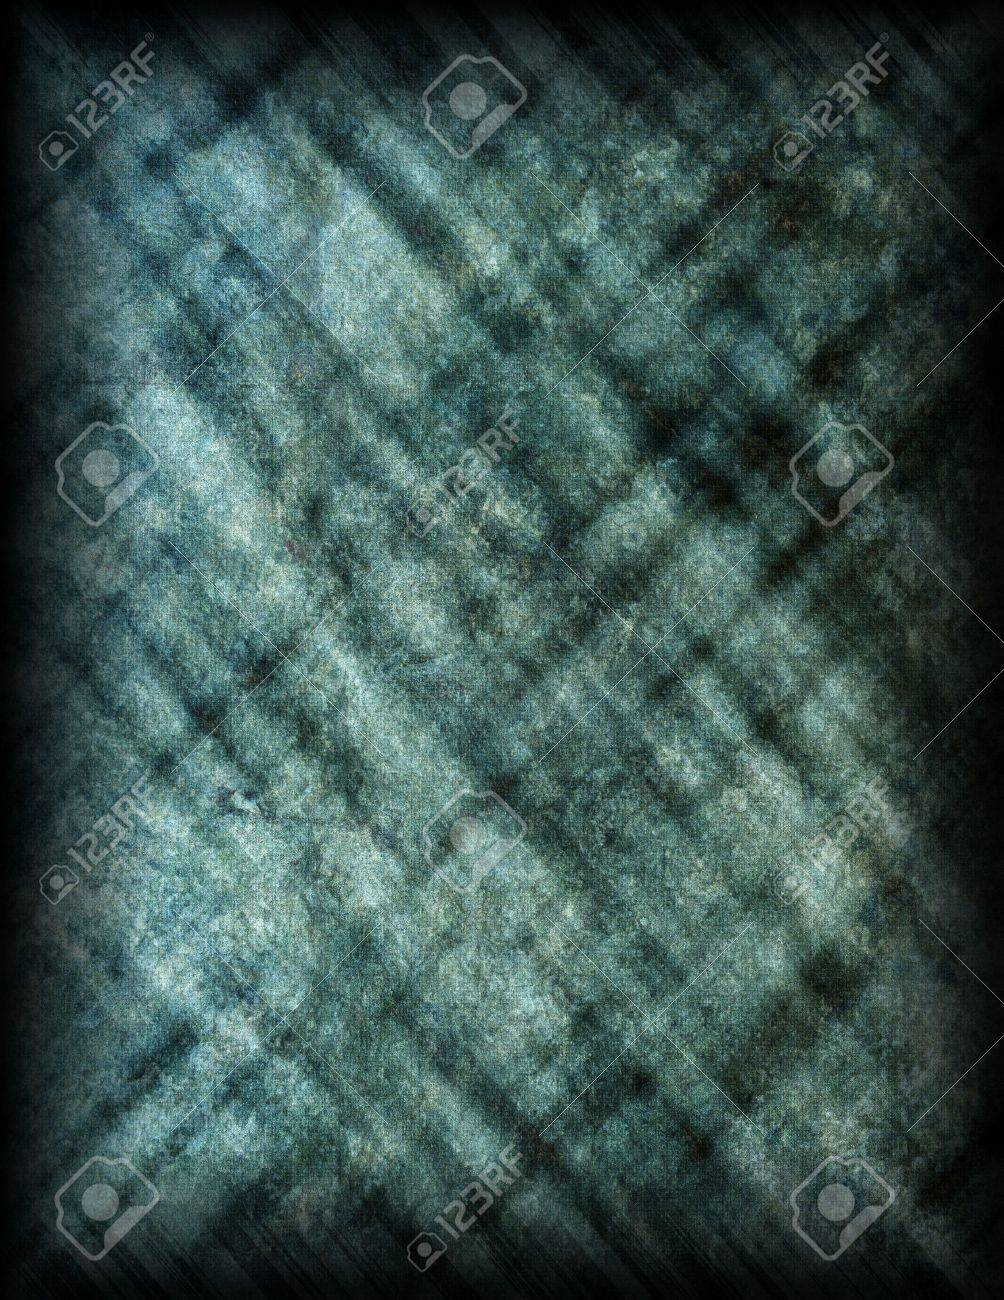 A very highly detailed and intricate grunge cloth or canvas like texture background image. Stock Photo - 14957473